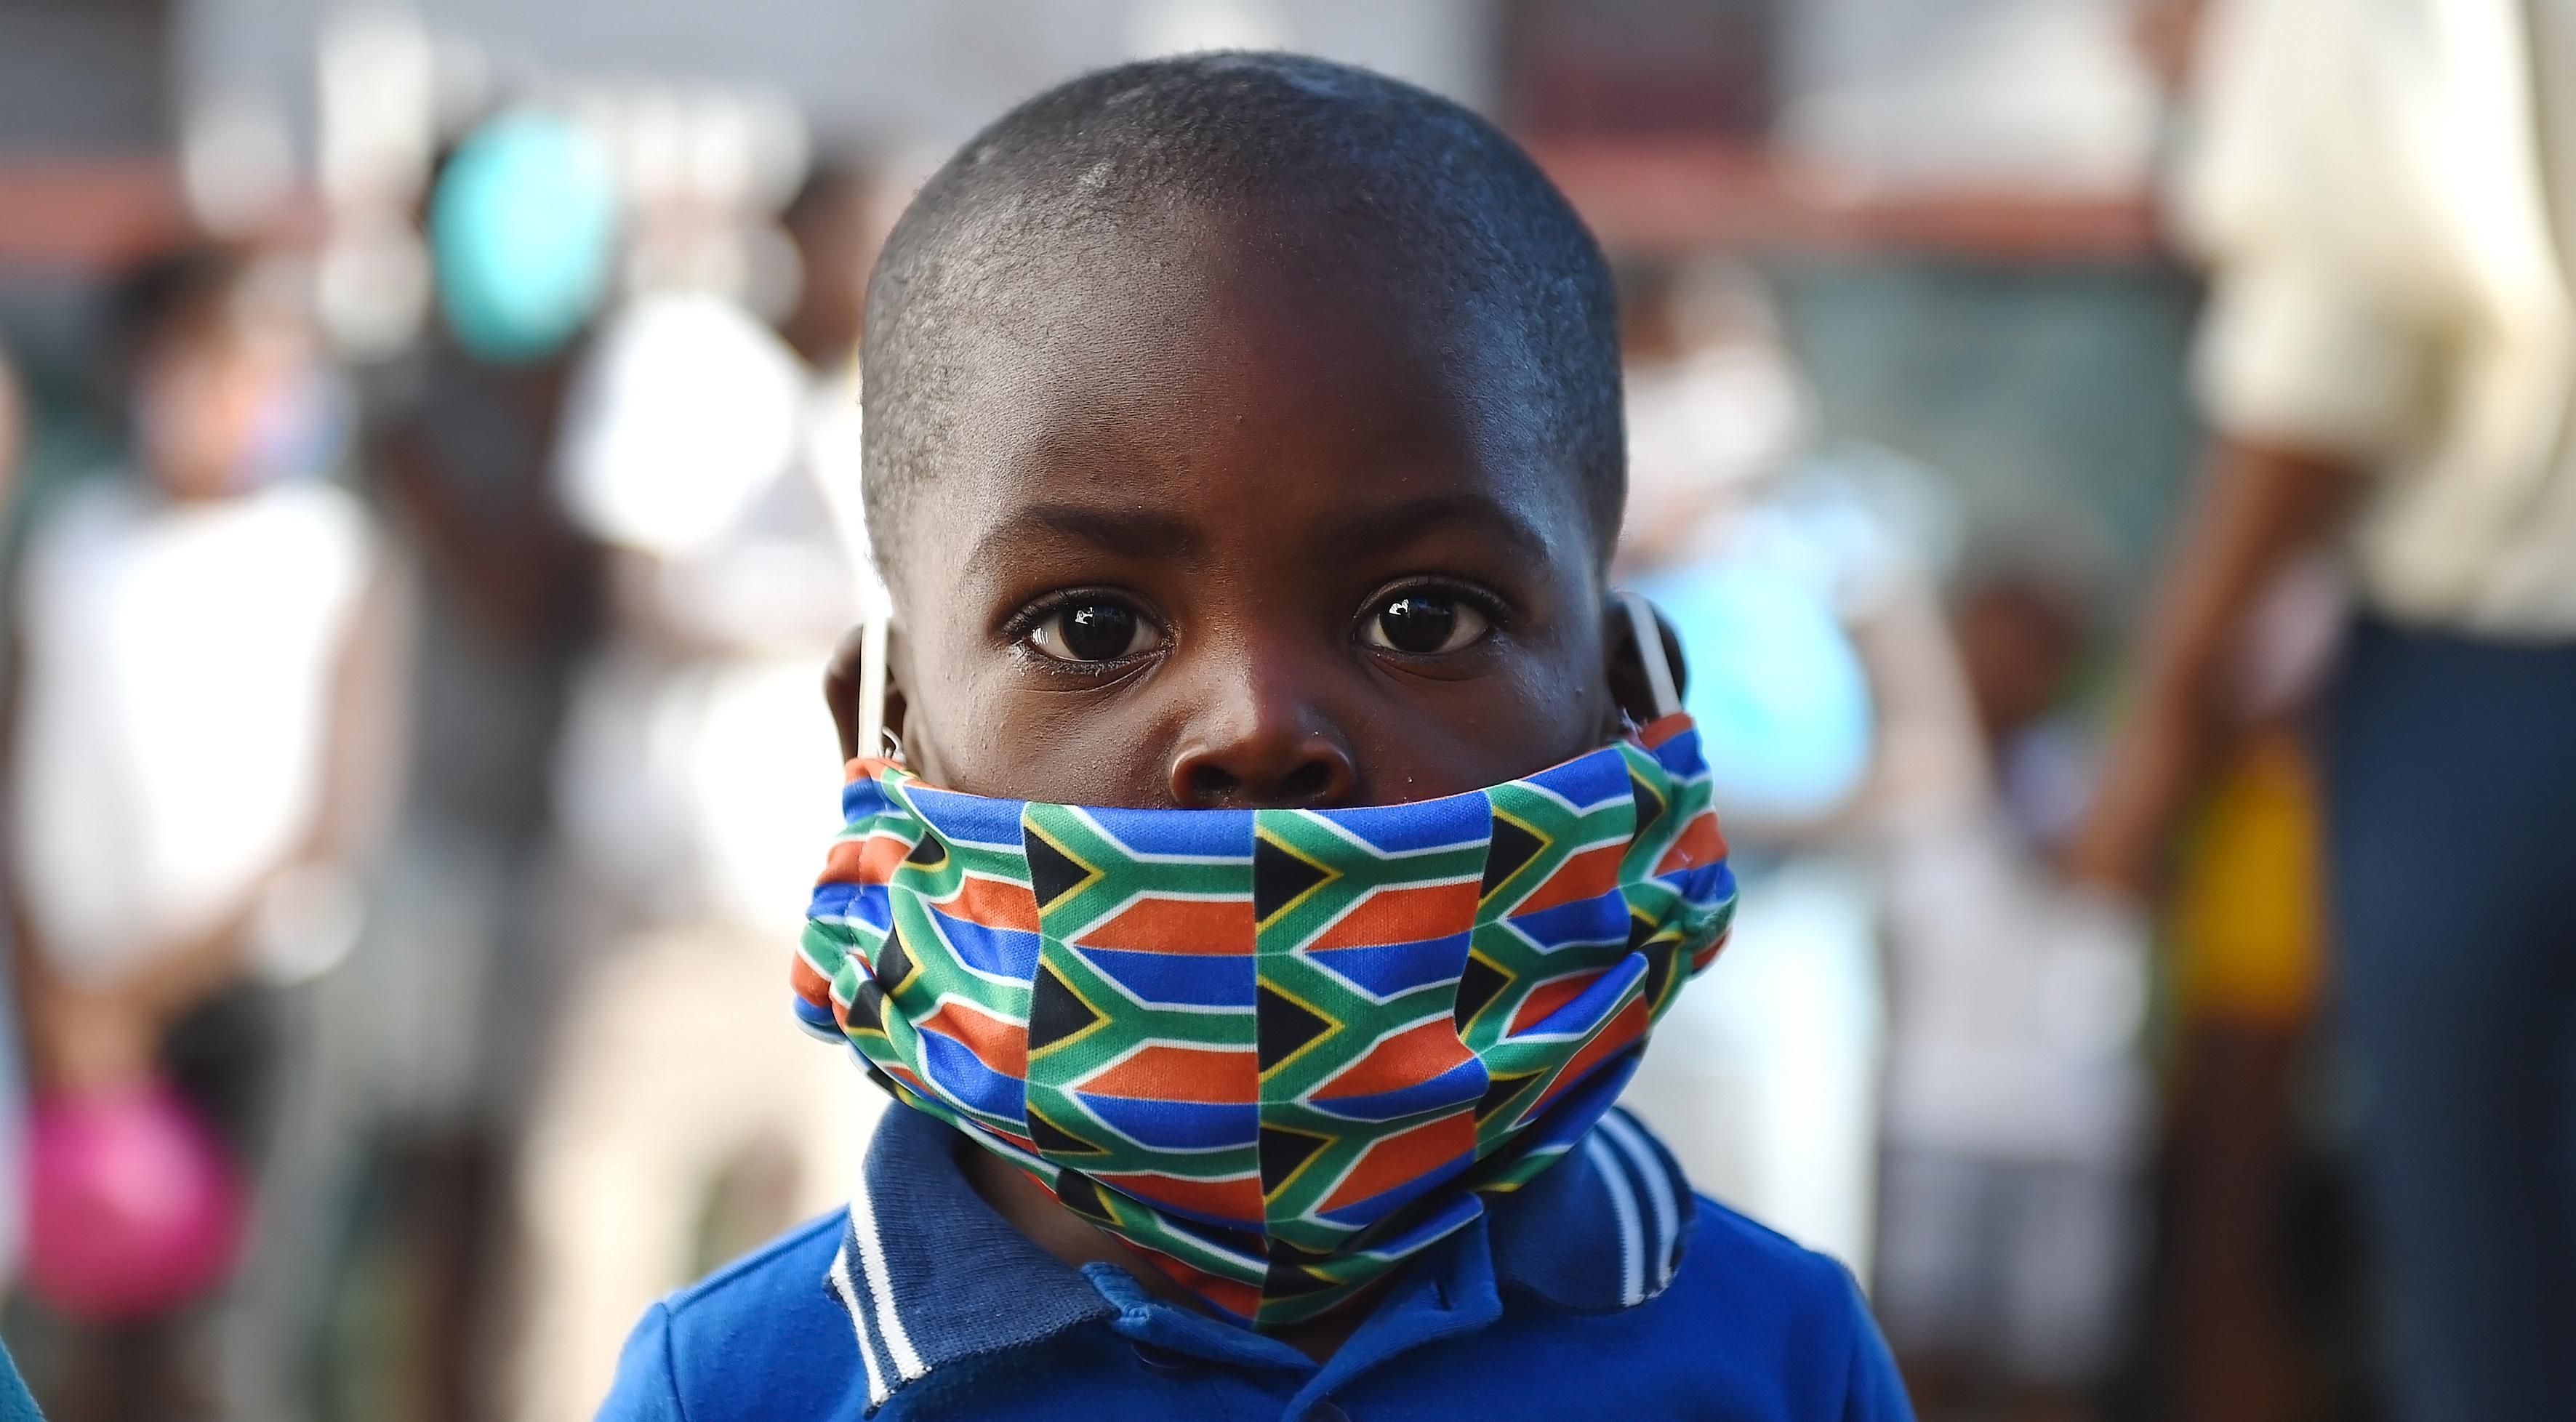 South Africa has now officially surpassed 1 million confirmed COVID-19 cases. Reuters